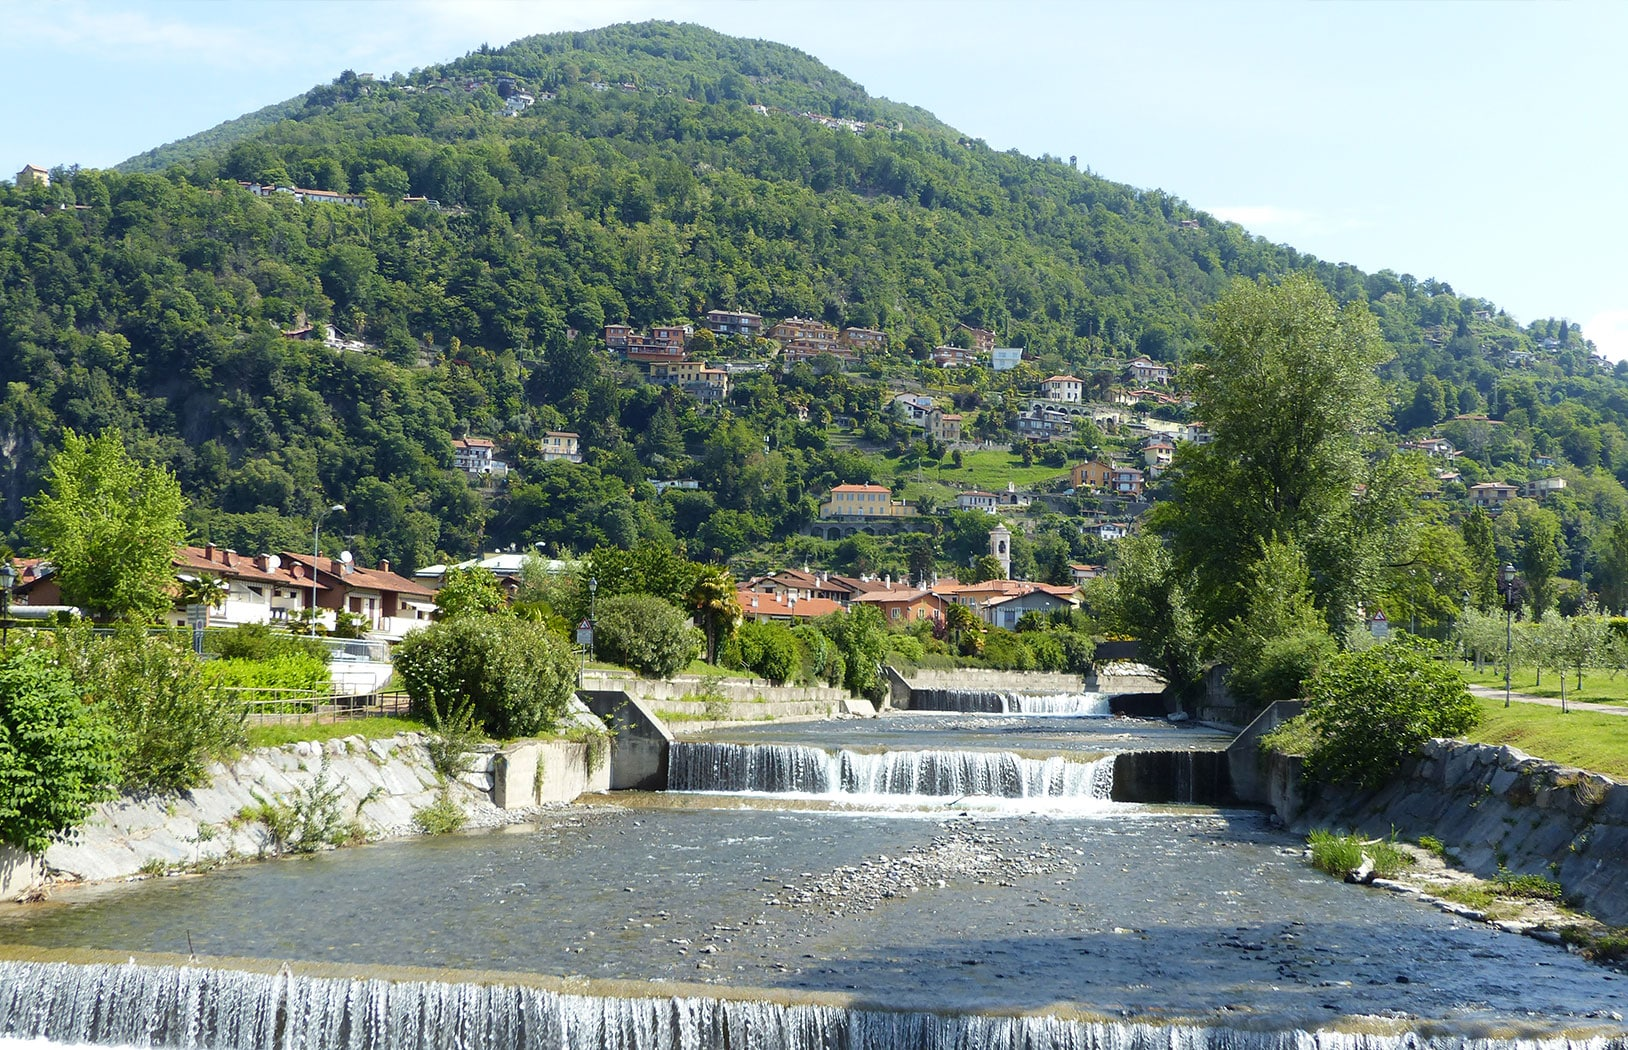 Camping in Nord Italien